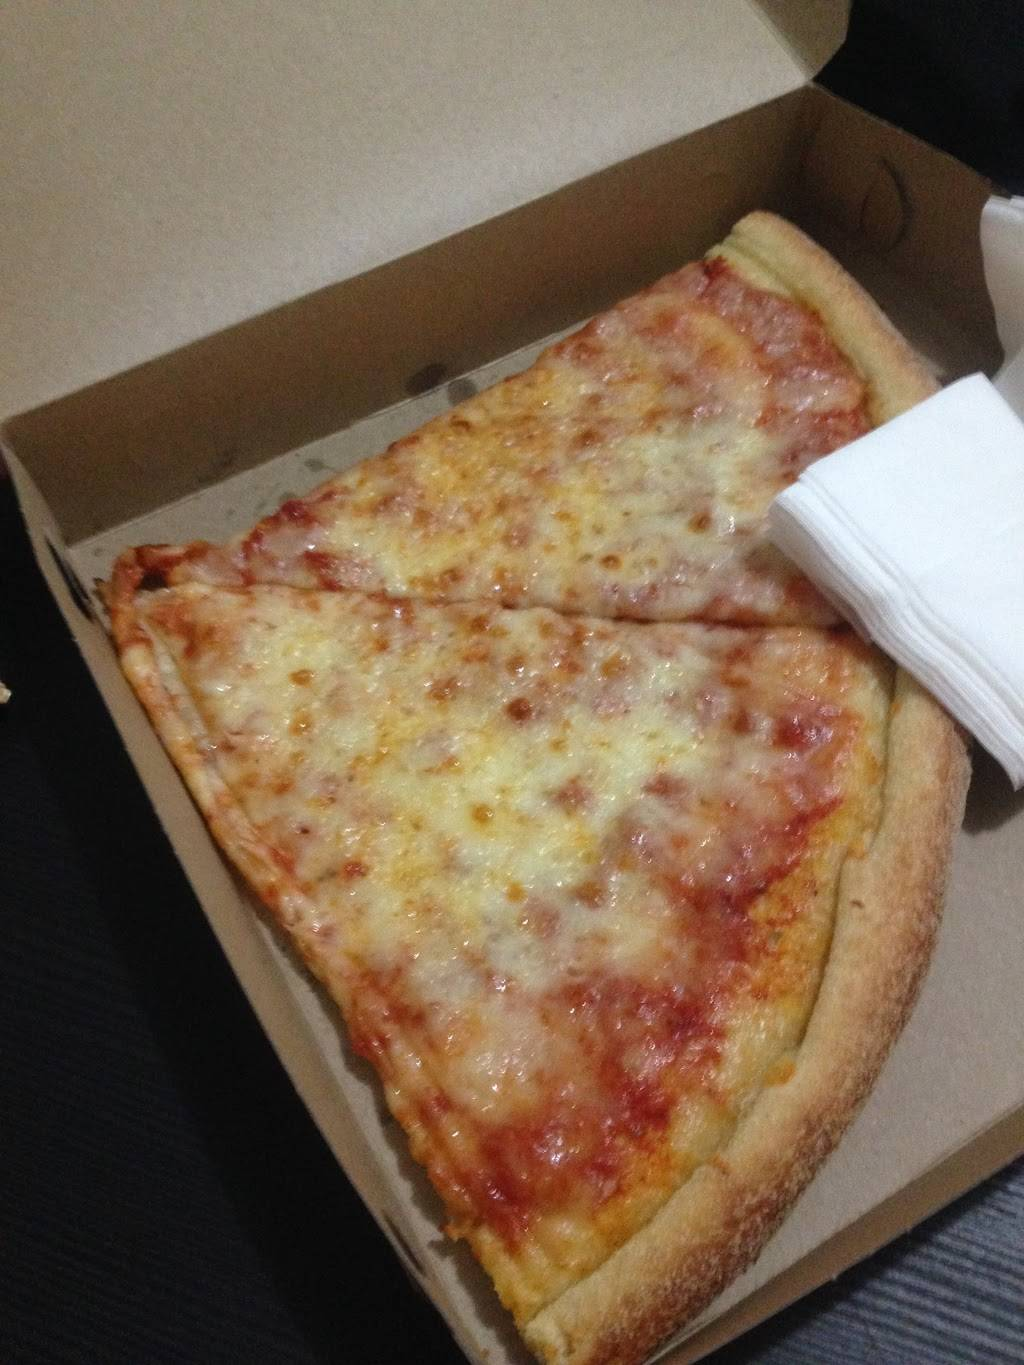 Crown Fried Chicken & Pizza | restaurant | 152 Rockaway Ave, Brooklyn, NY 11233, USA | 7183460088 OR +1 718-346-0088